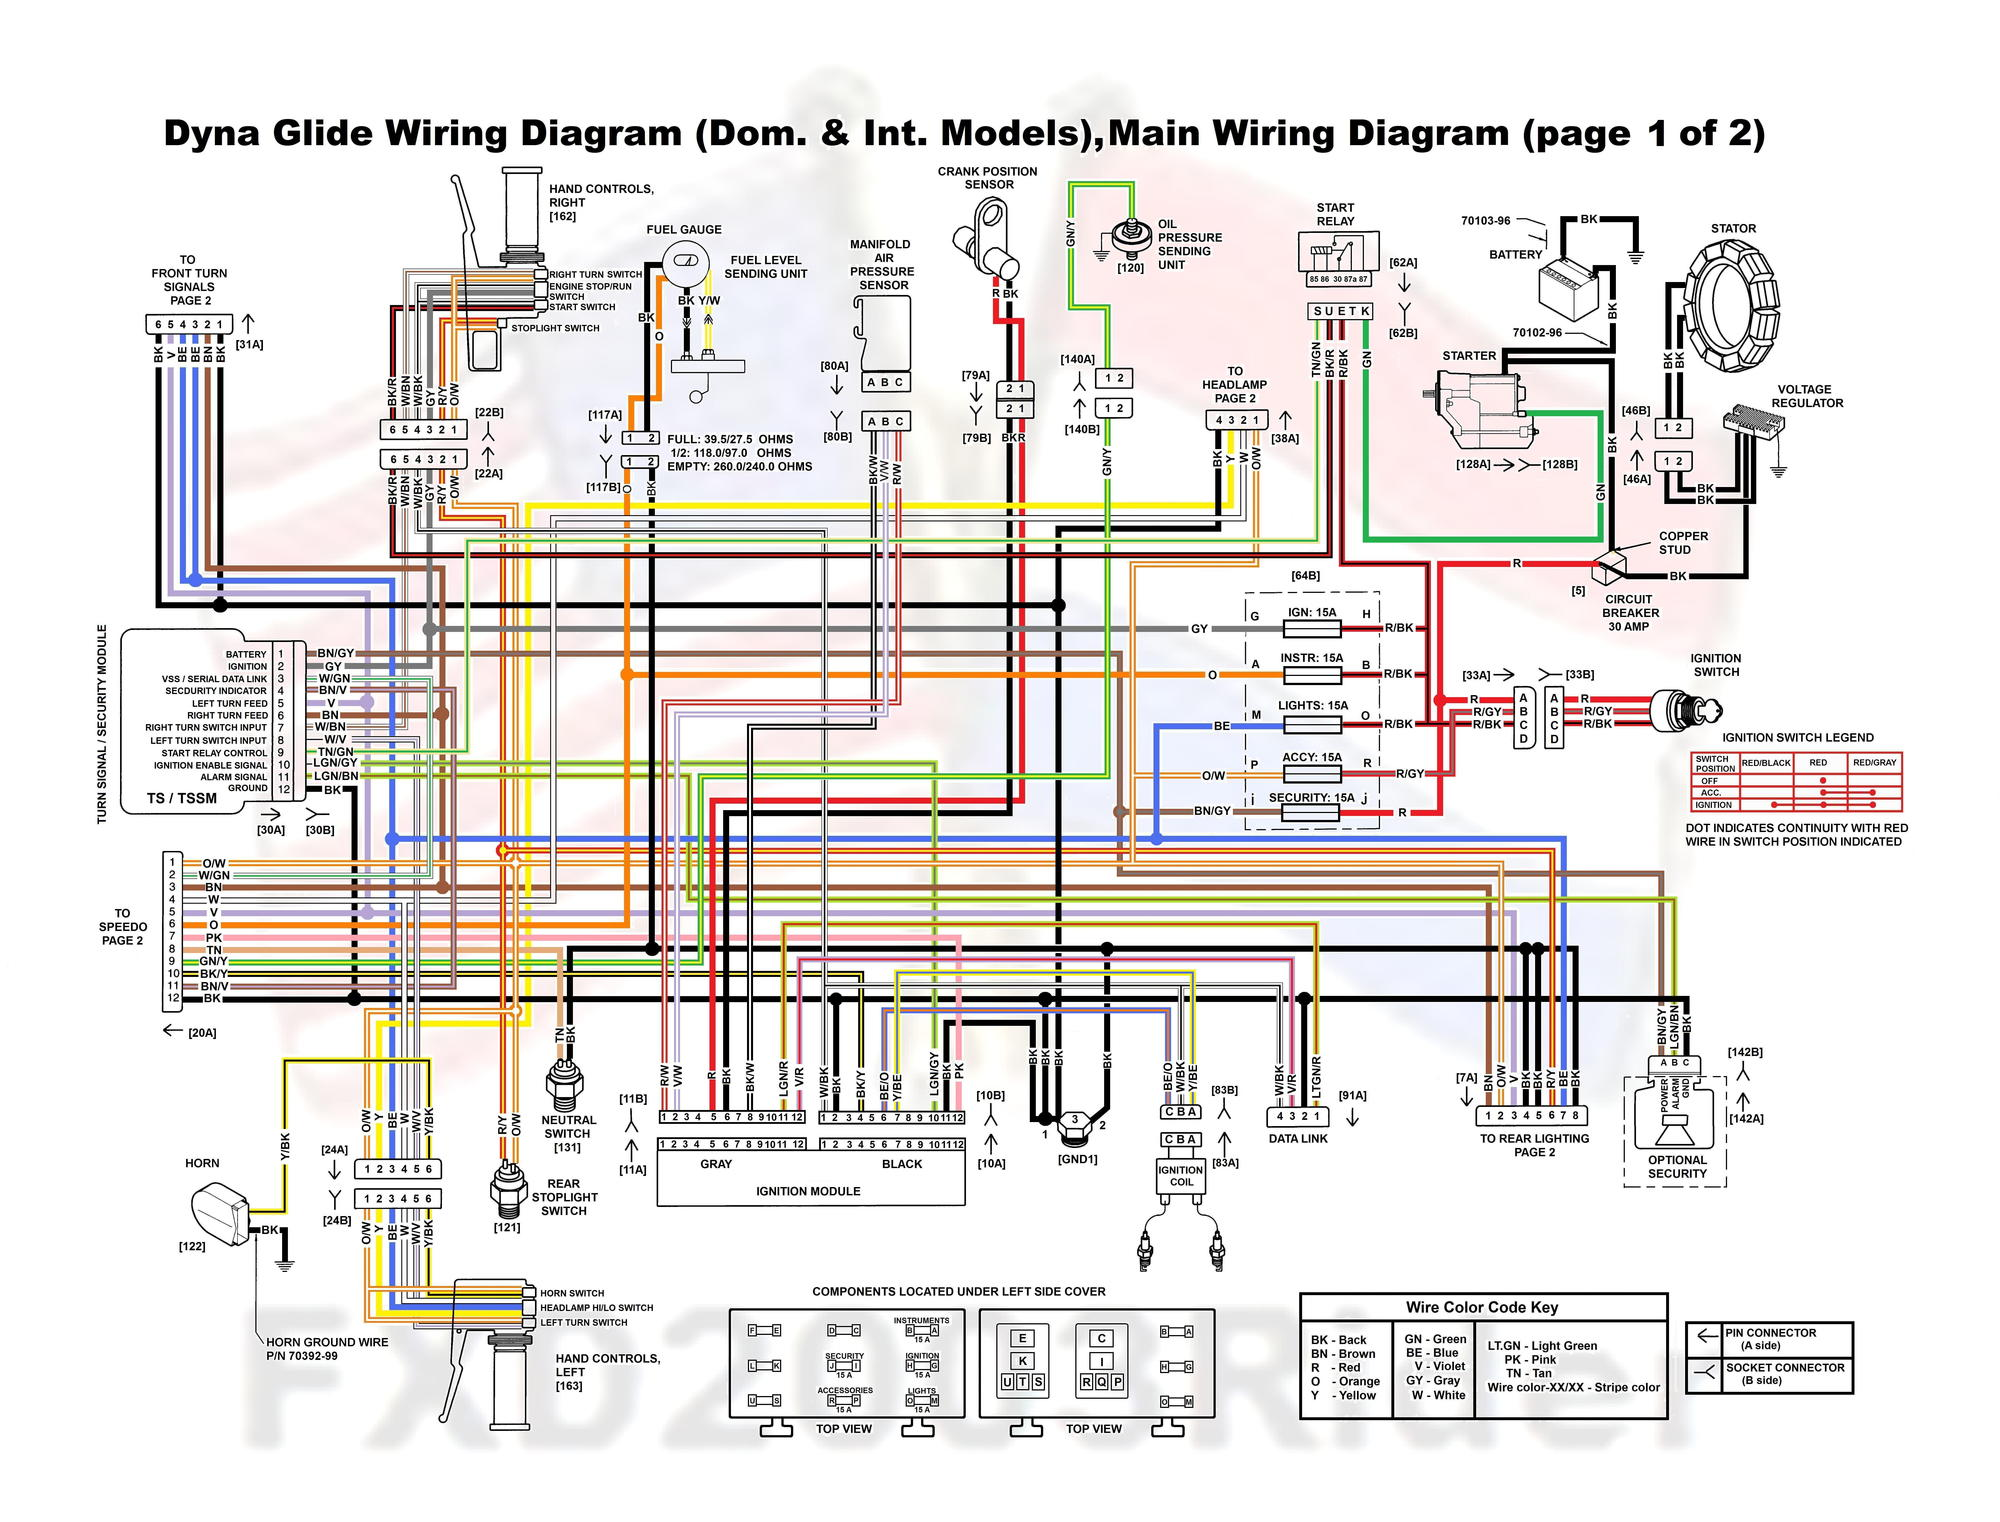 DIAGRAM] 86 Softail Custom Wiring Diagram FULL Version HD Quality Wiring  Diagram - MEIA-DIAGRAM.RADD.FRDiagram Database - Radd